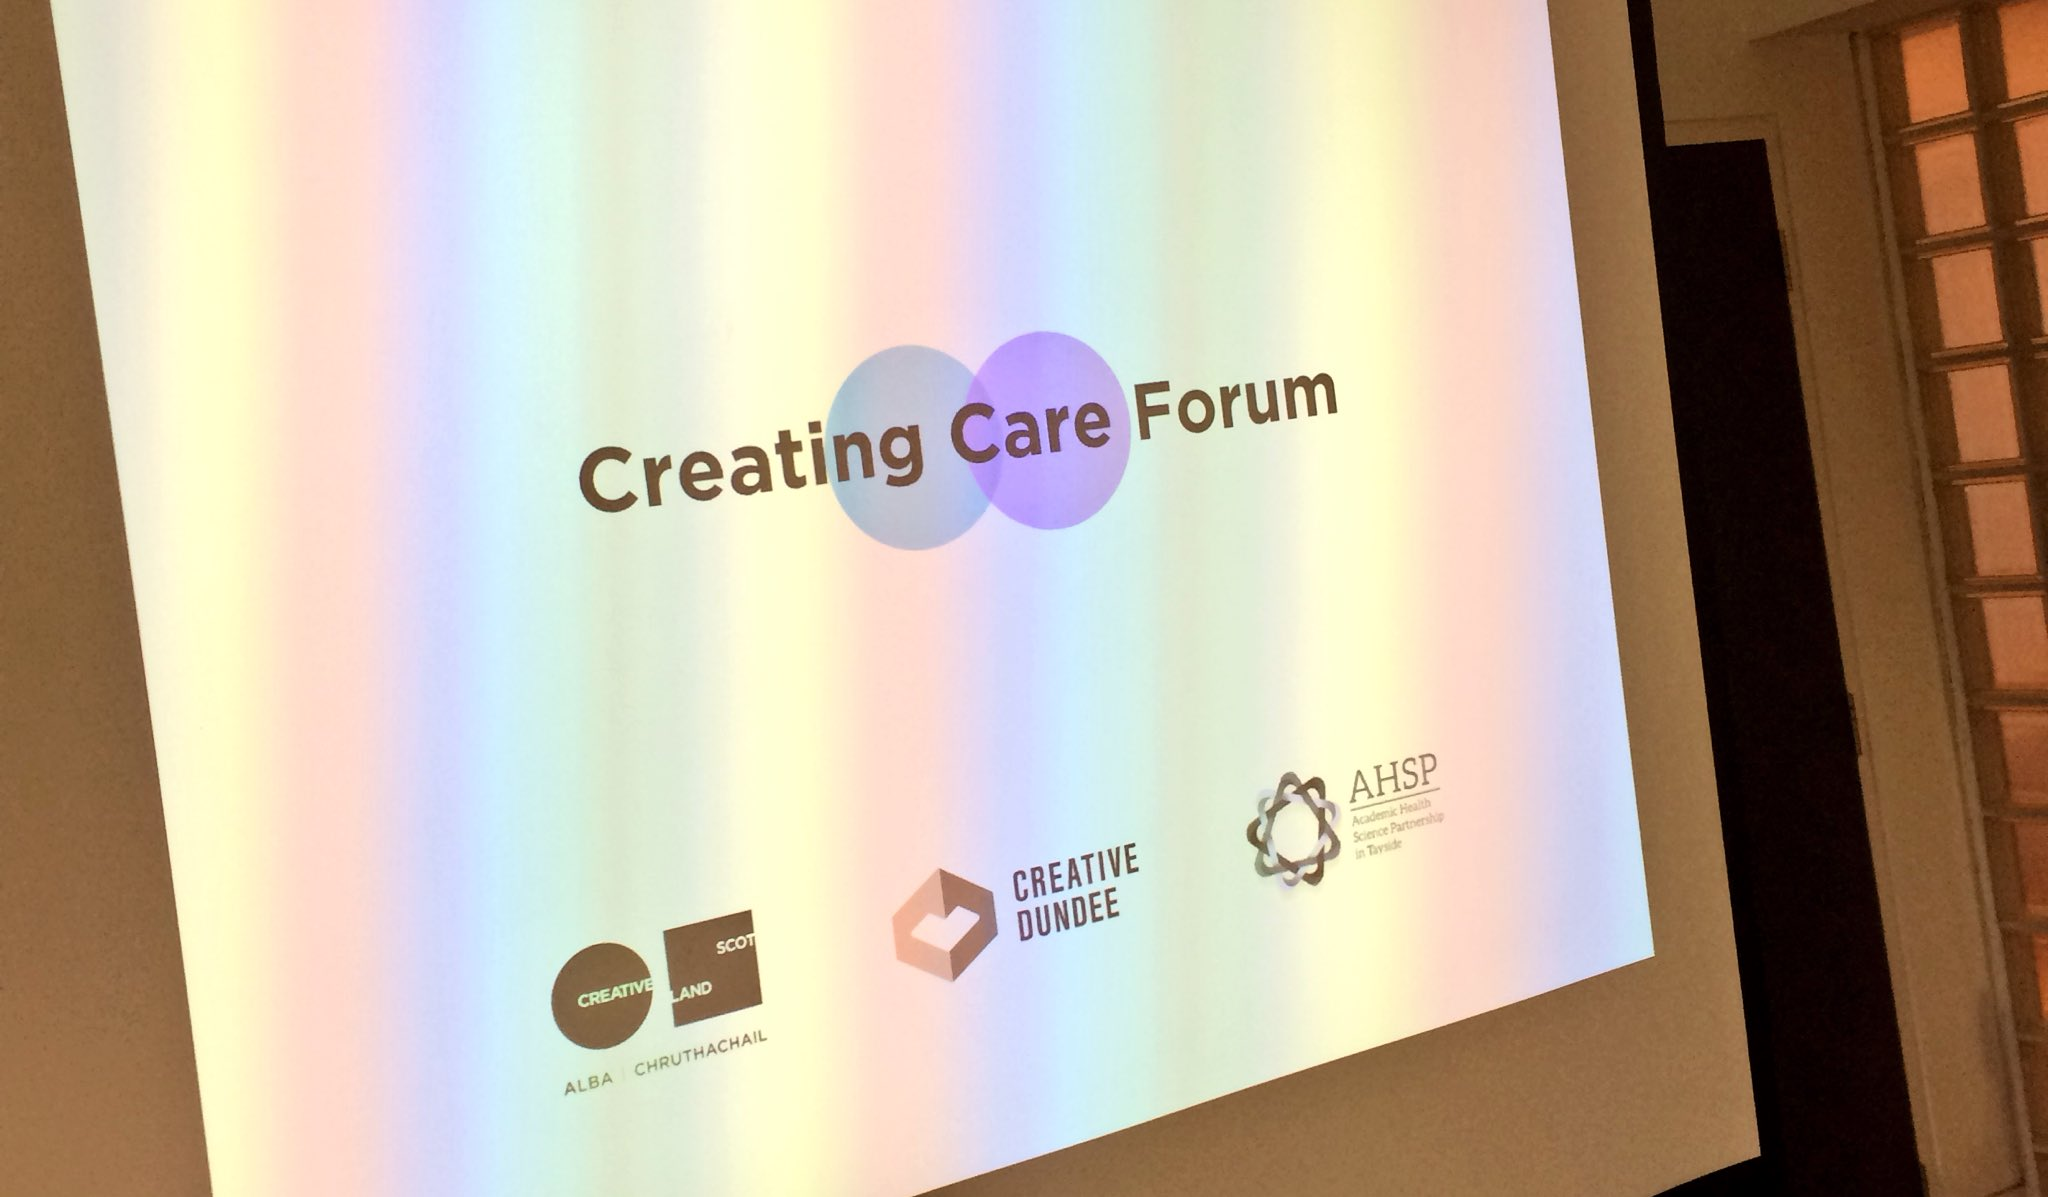 Getting ready for the start of #creatingcare with @Creative_Dundee and @RodneyMountain at @DCAdundee - healthcare meets design https://t.co/vMLgKwB3Xy